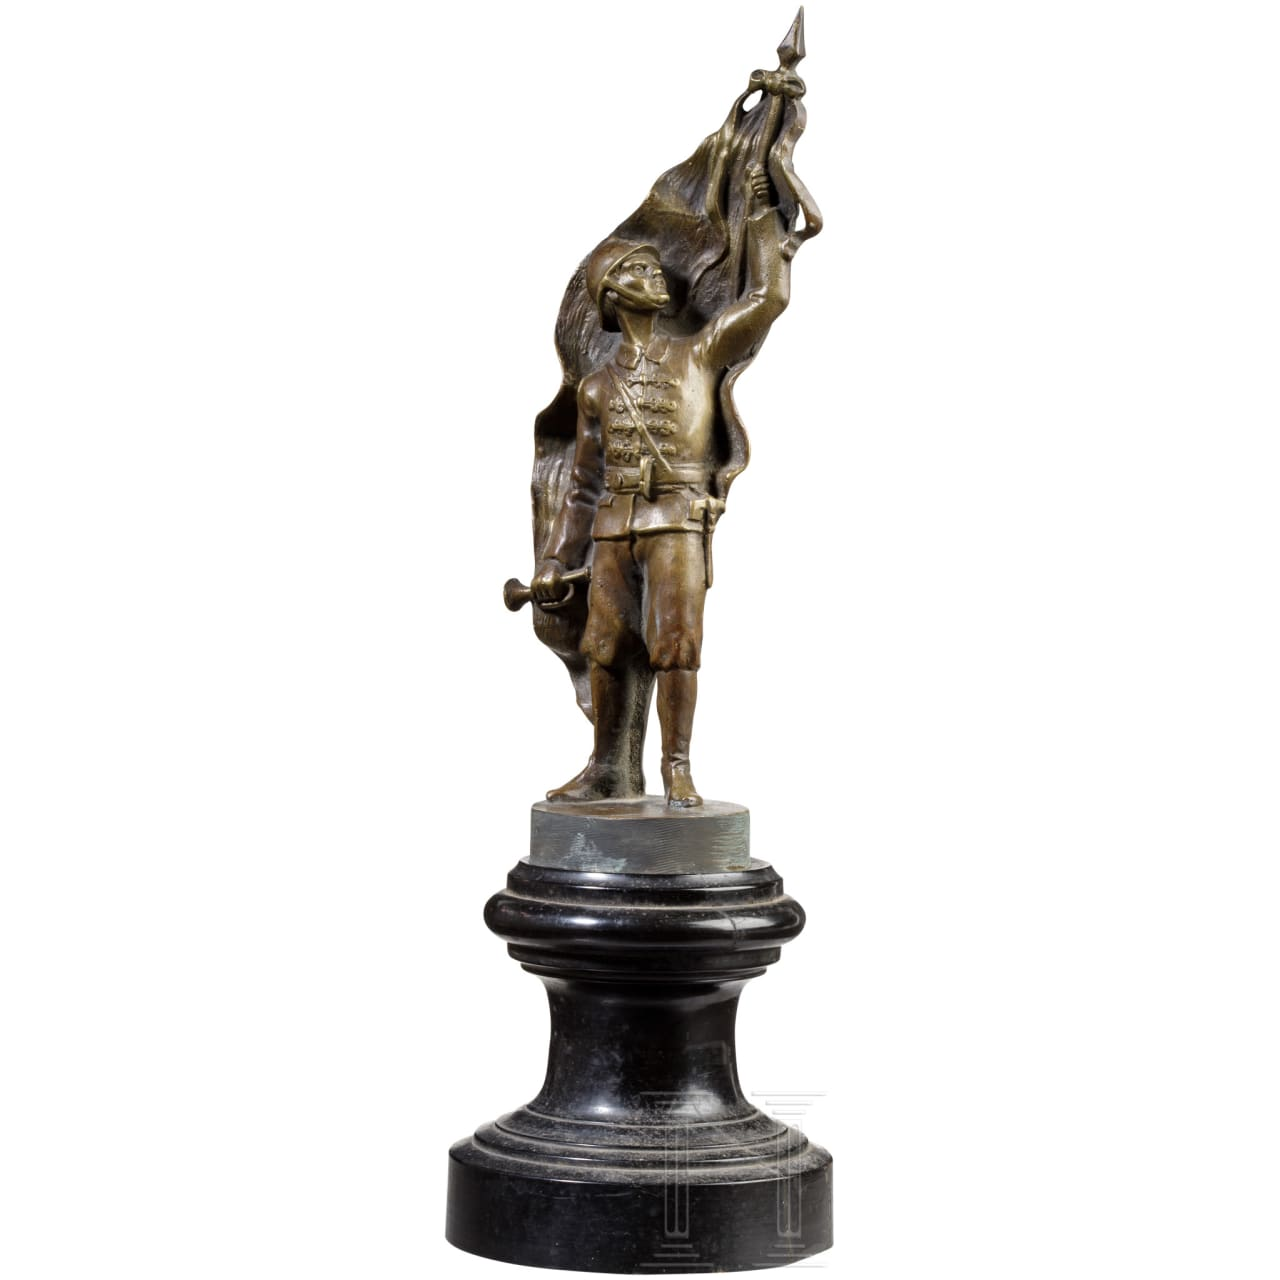 Bronze figure of a firefighter